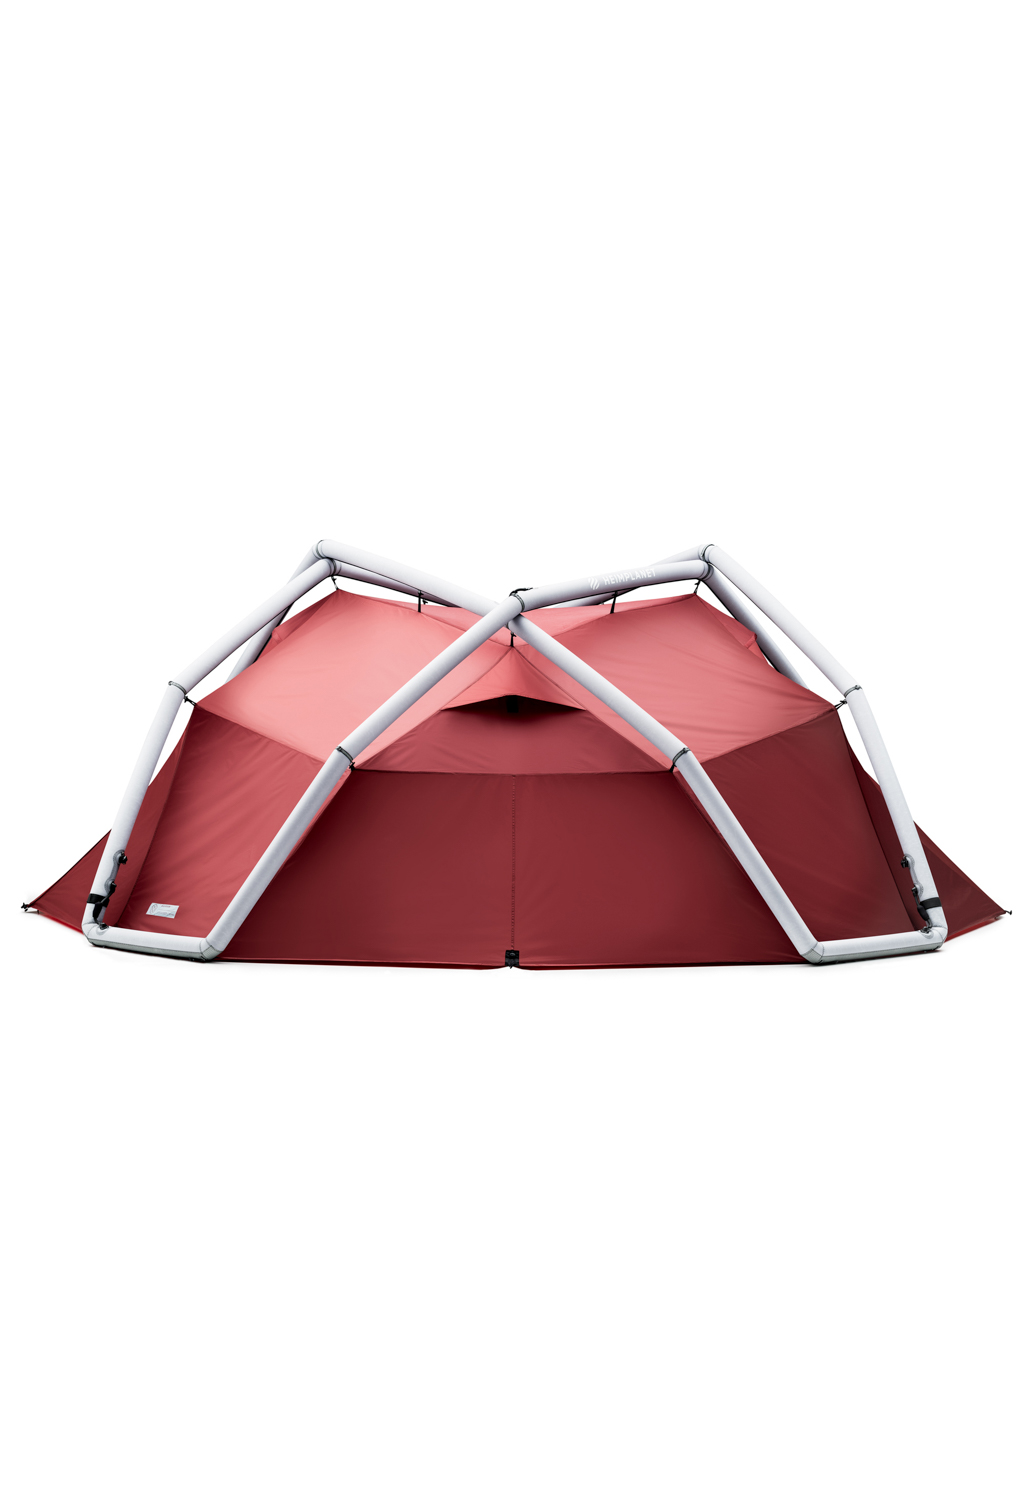 Heimplanet Backdoor Tent 0